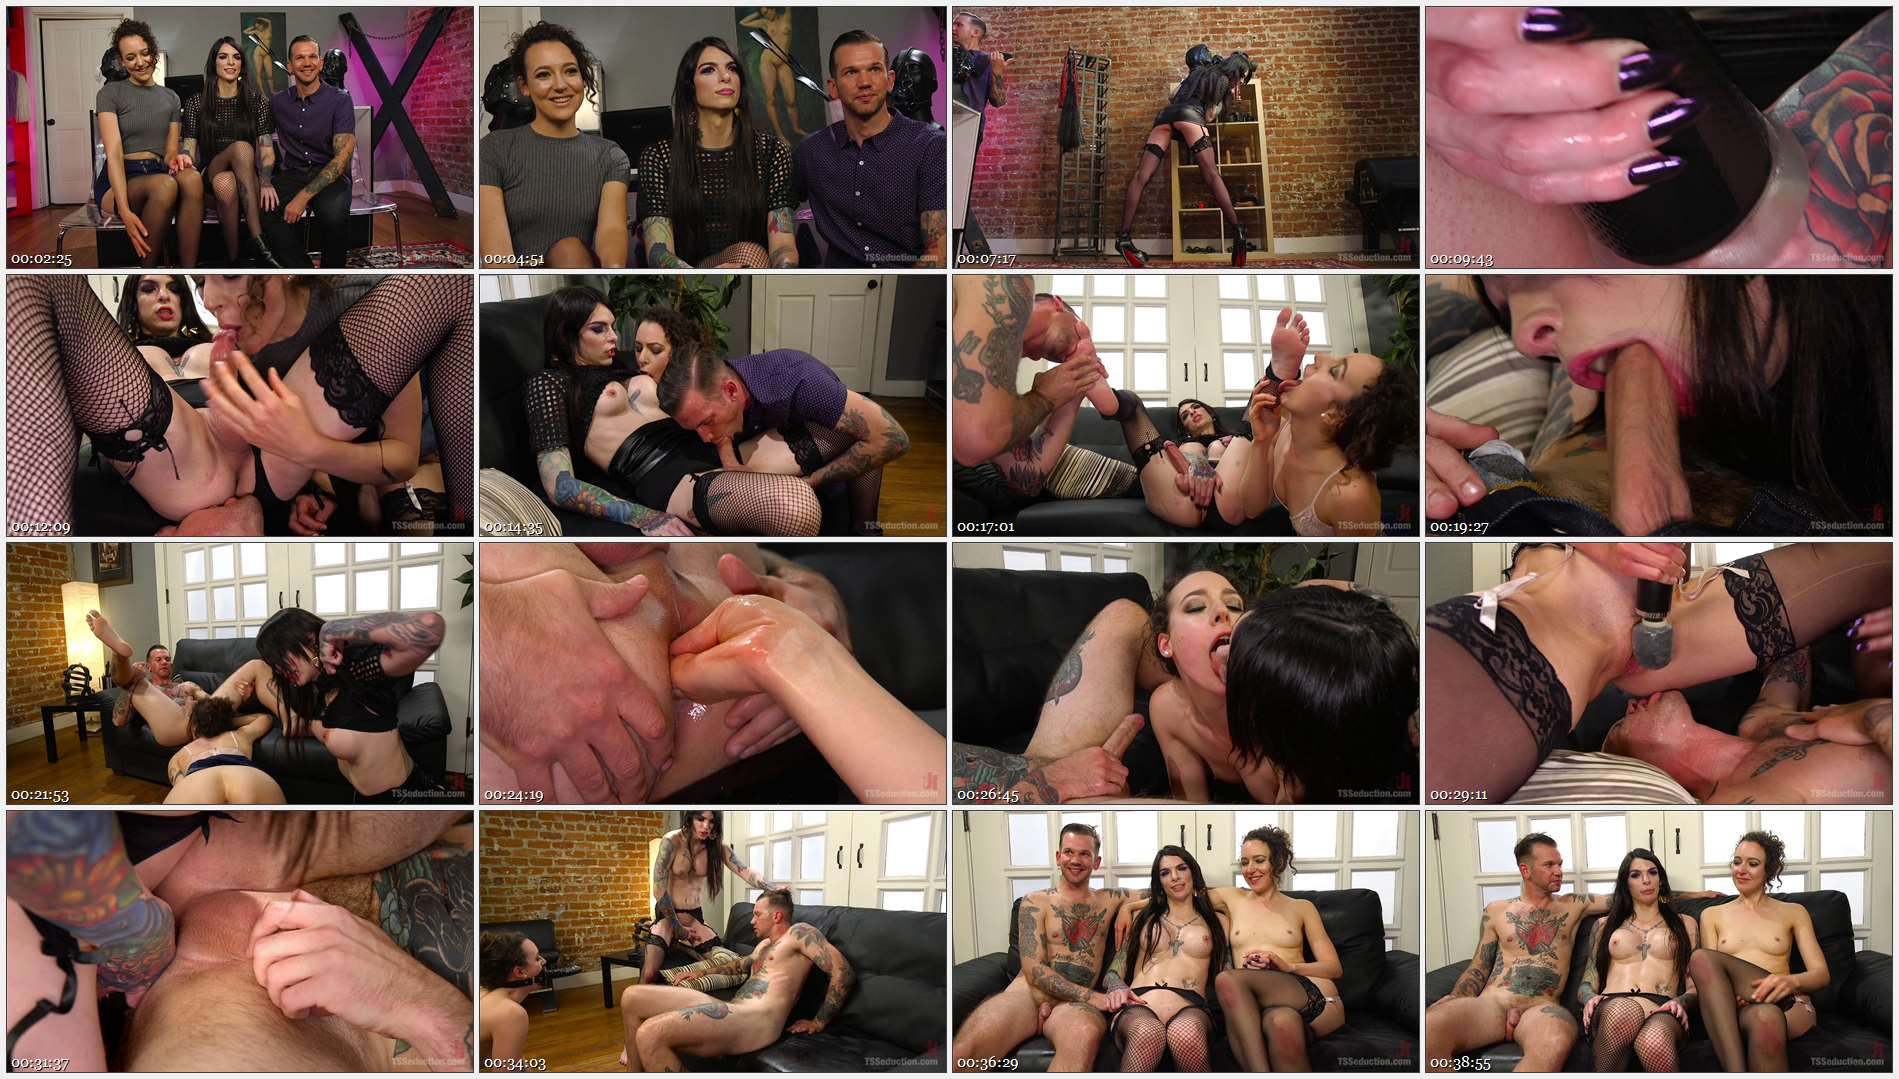 Chelsea Marie – Lilith Luxe – Will Havoc – Hot, Slutty TS Lady Barges into Sex Shop to Fuck and Suck the Staff!